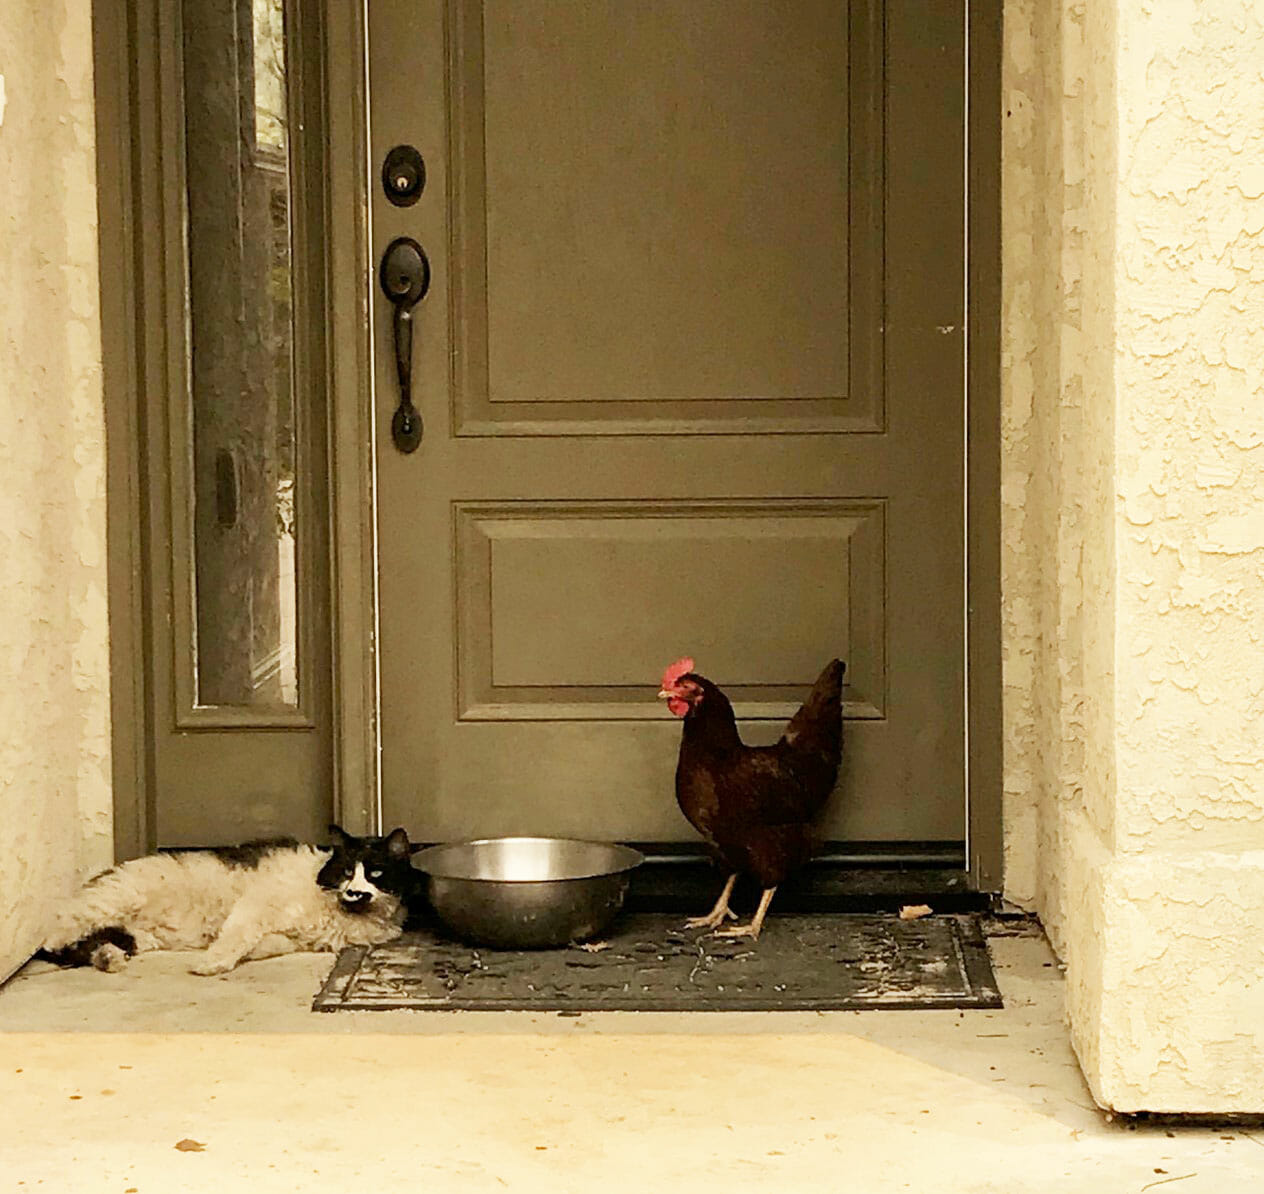 Green Valley Firefighters discovered a chicken and cat huddled together in a doorway